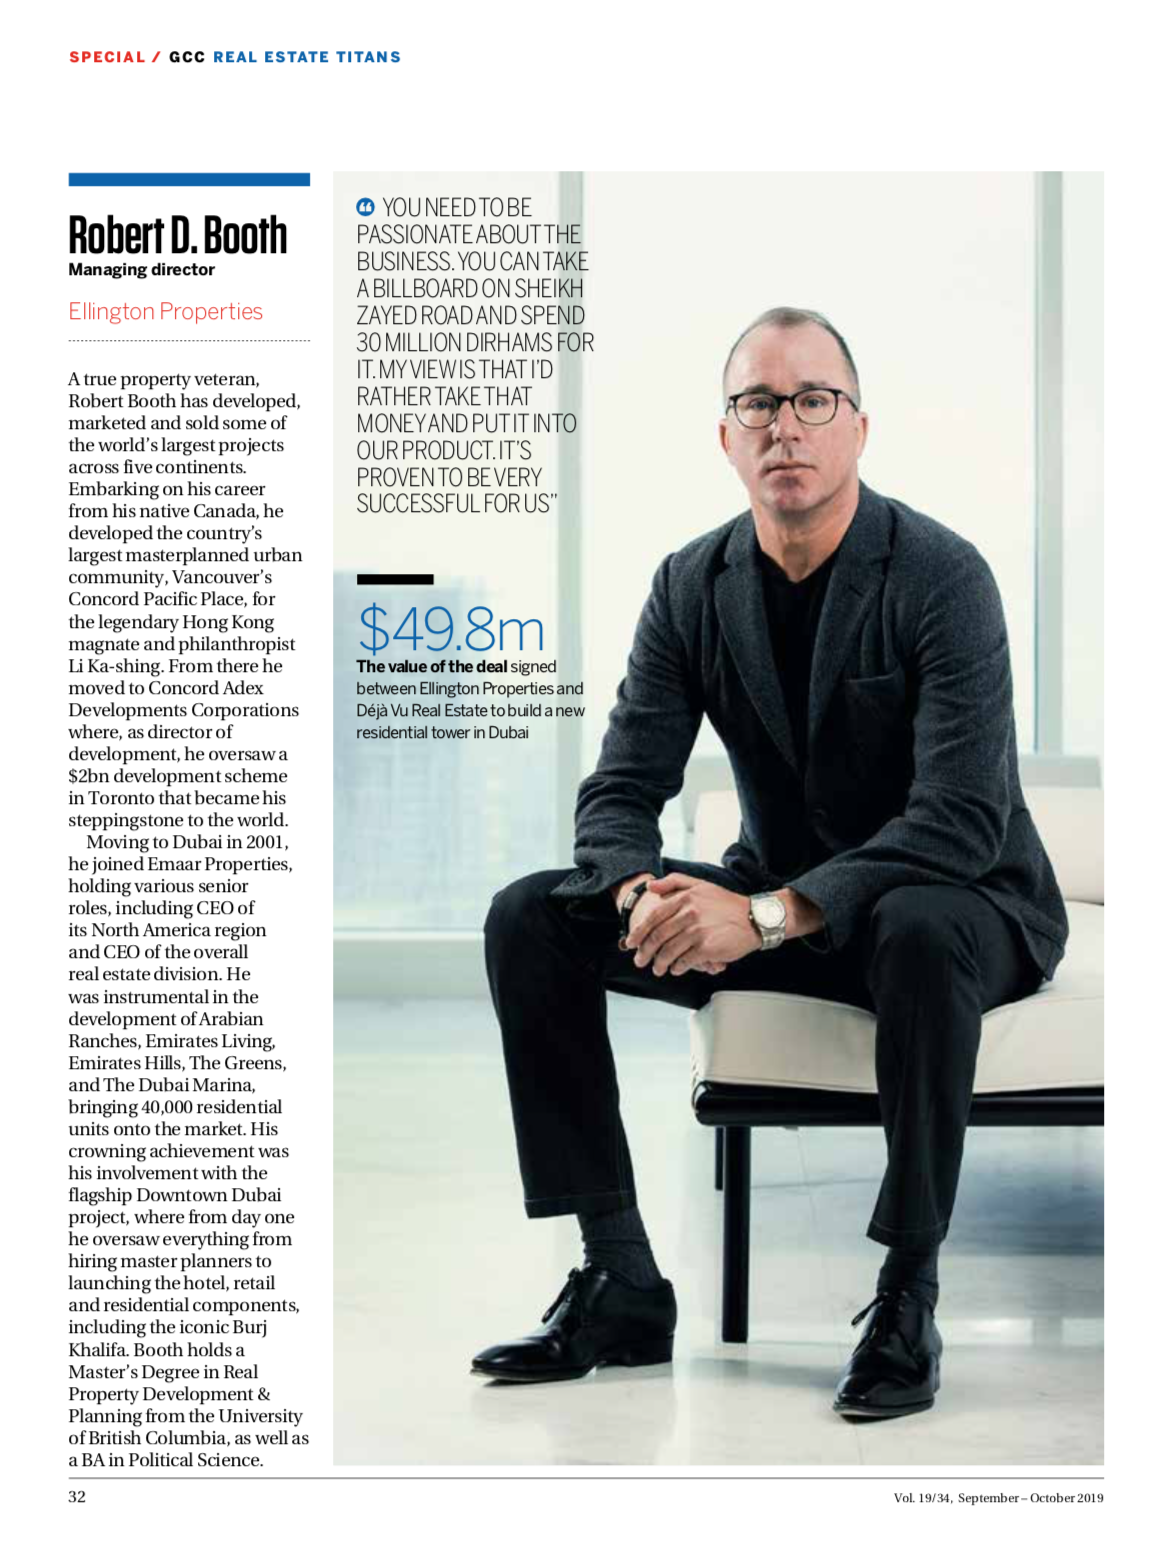 Robert Booth Article on Arabian Business - Real Estate Titans